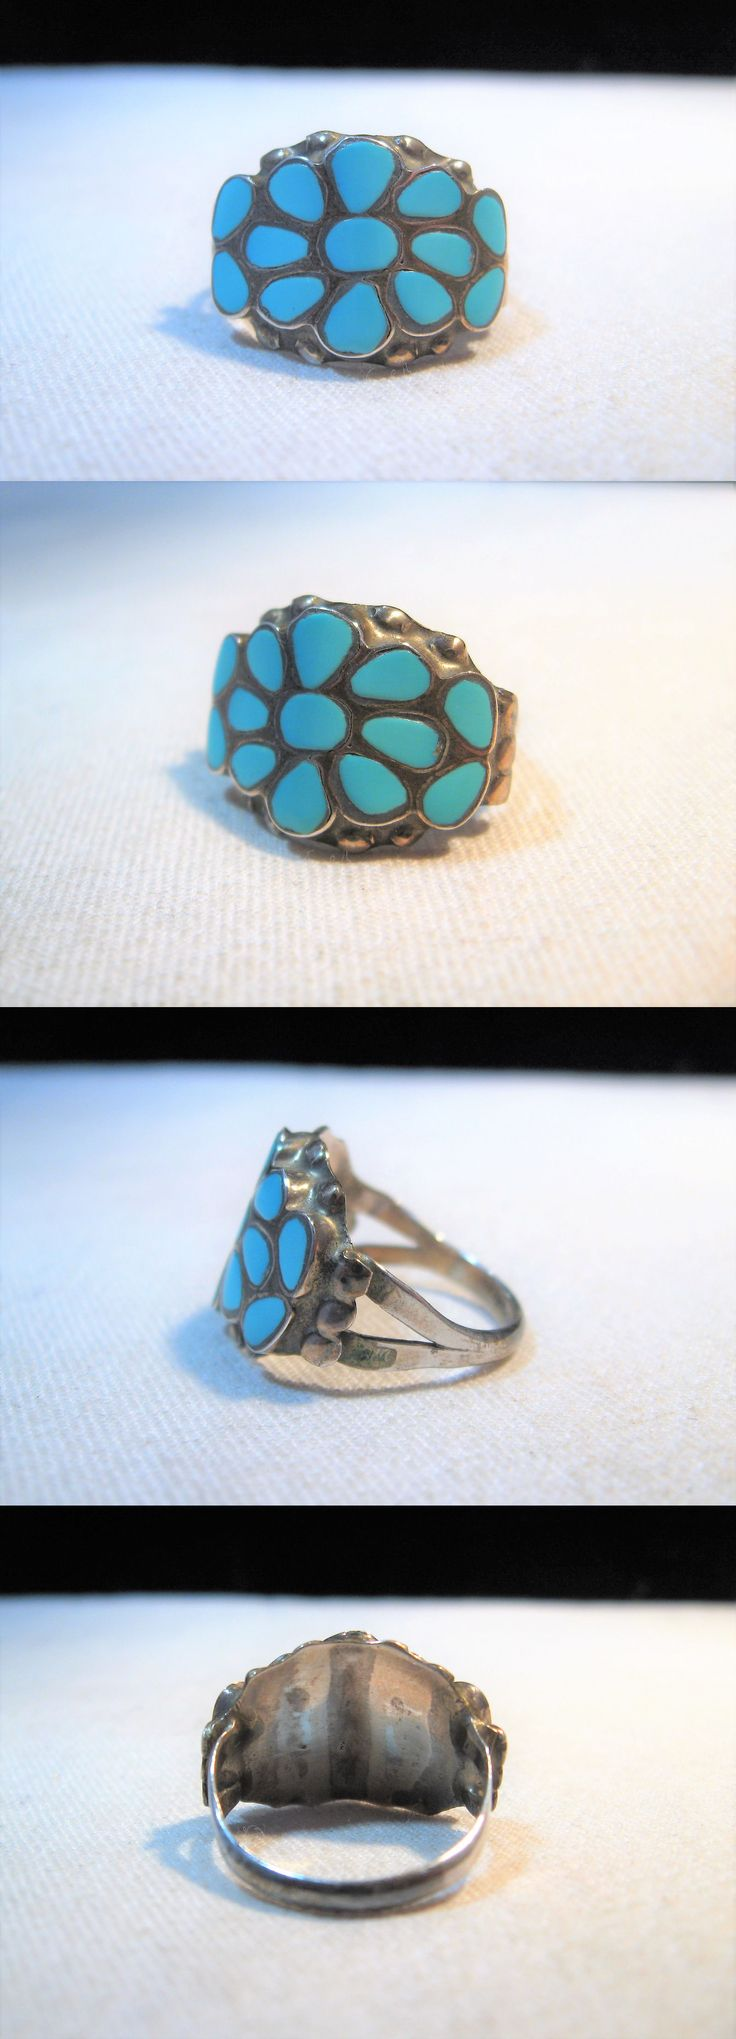 Native American pre-1935 165137: Estate Sterling Silver Dishta Inlay Turquoise Ring Size 7 K453 -> BUY IT NOW ONLY: $299 on eBay!